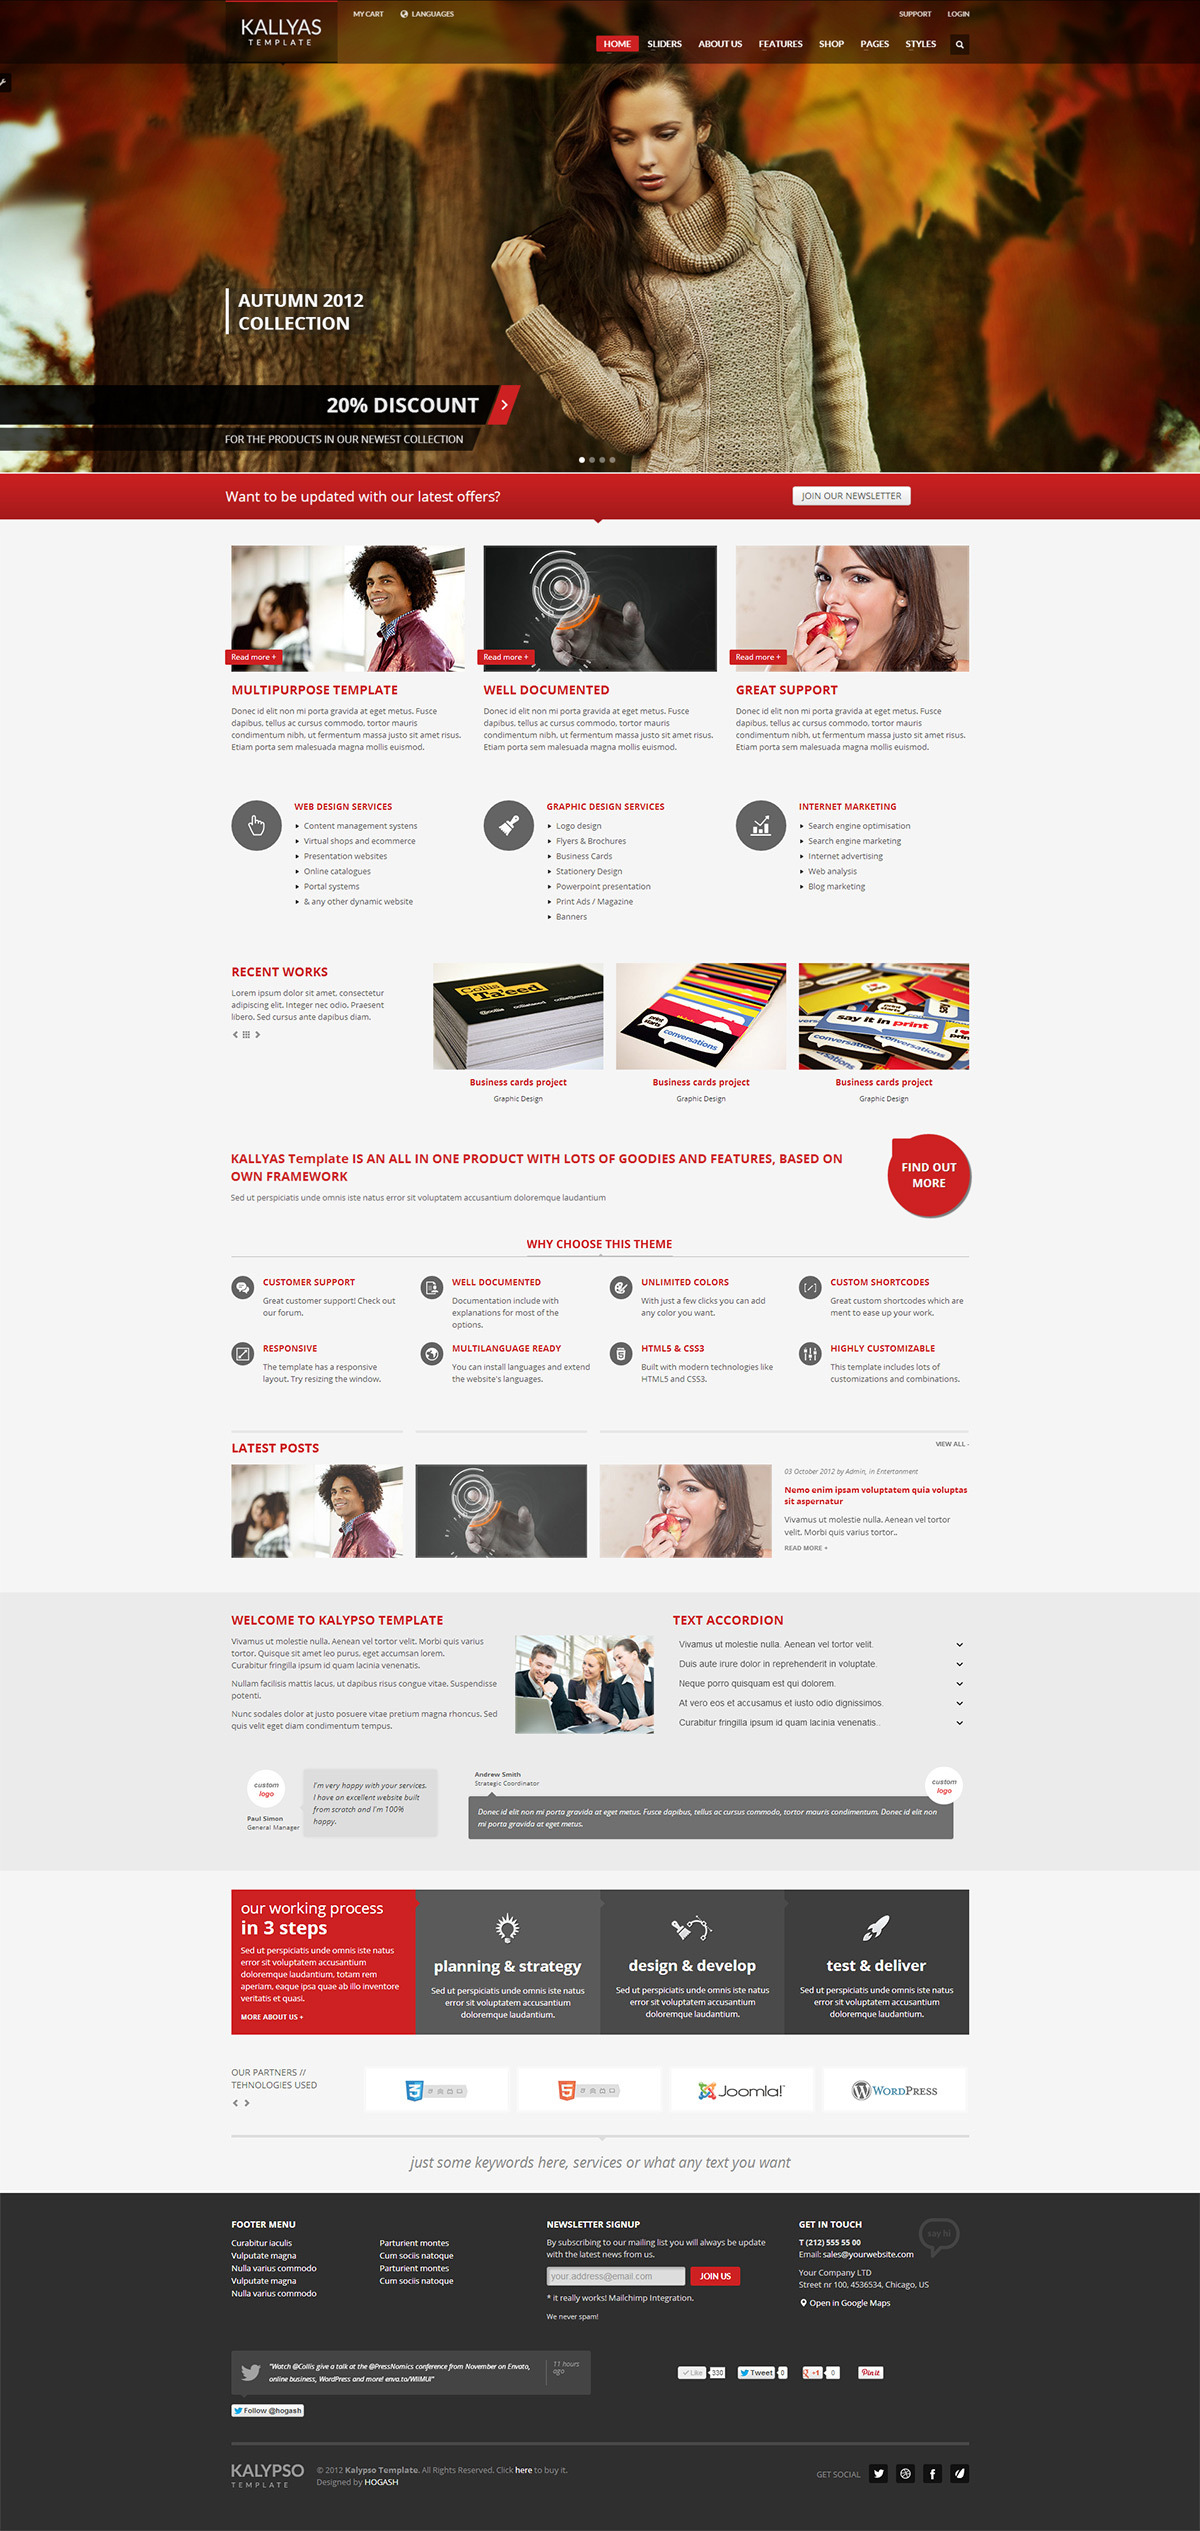 KALLYAS - Responsive Multipurpose Template - GENERAL PAGE - HOMEPAGE - MAIN SLIDER